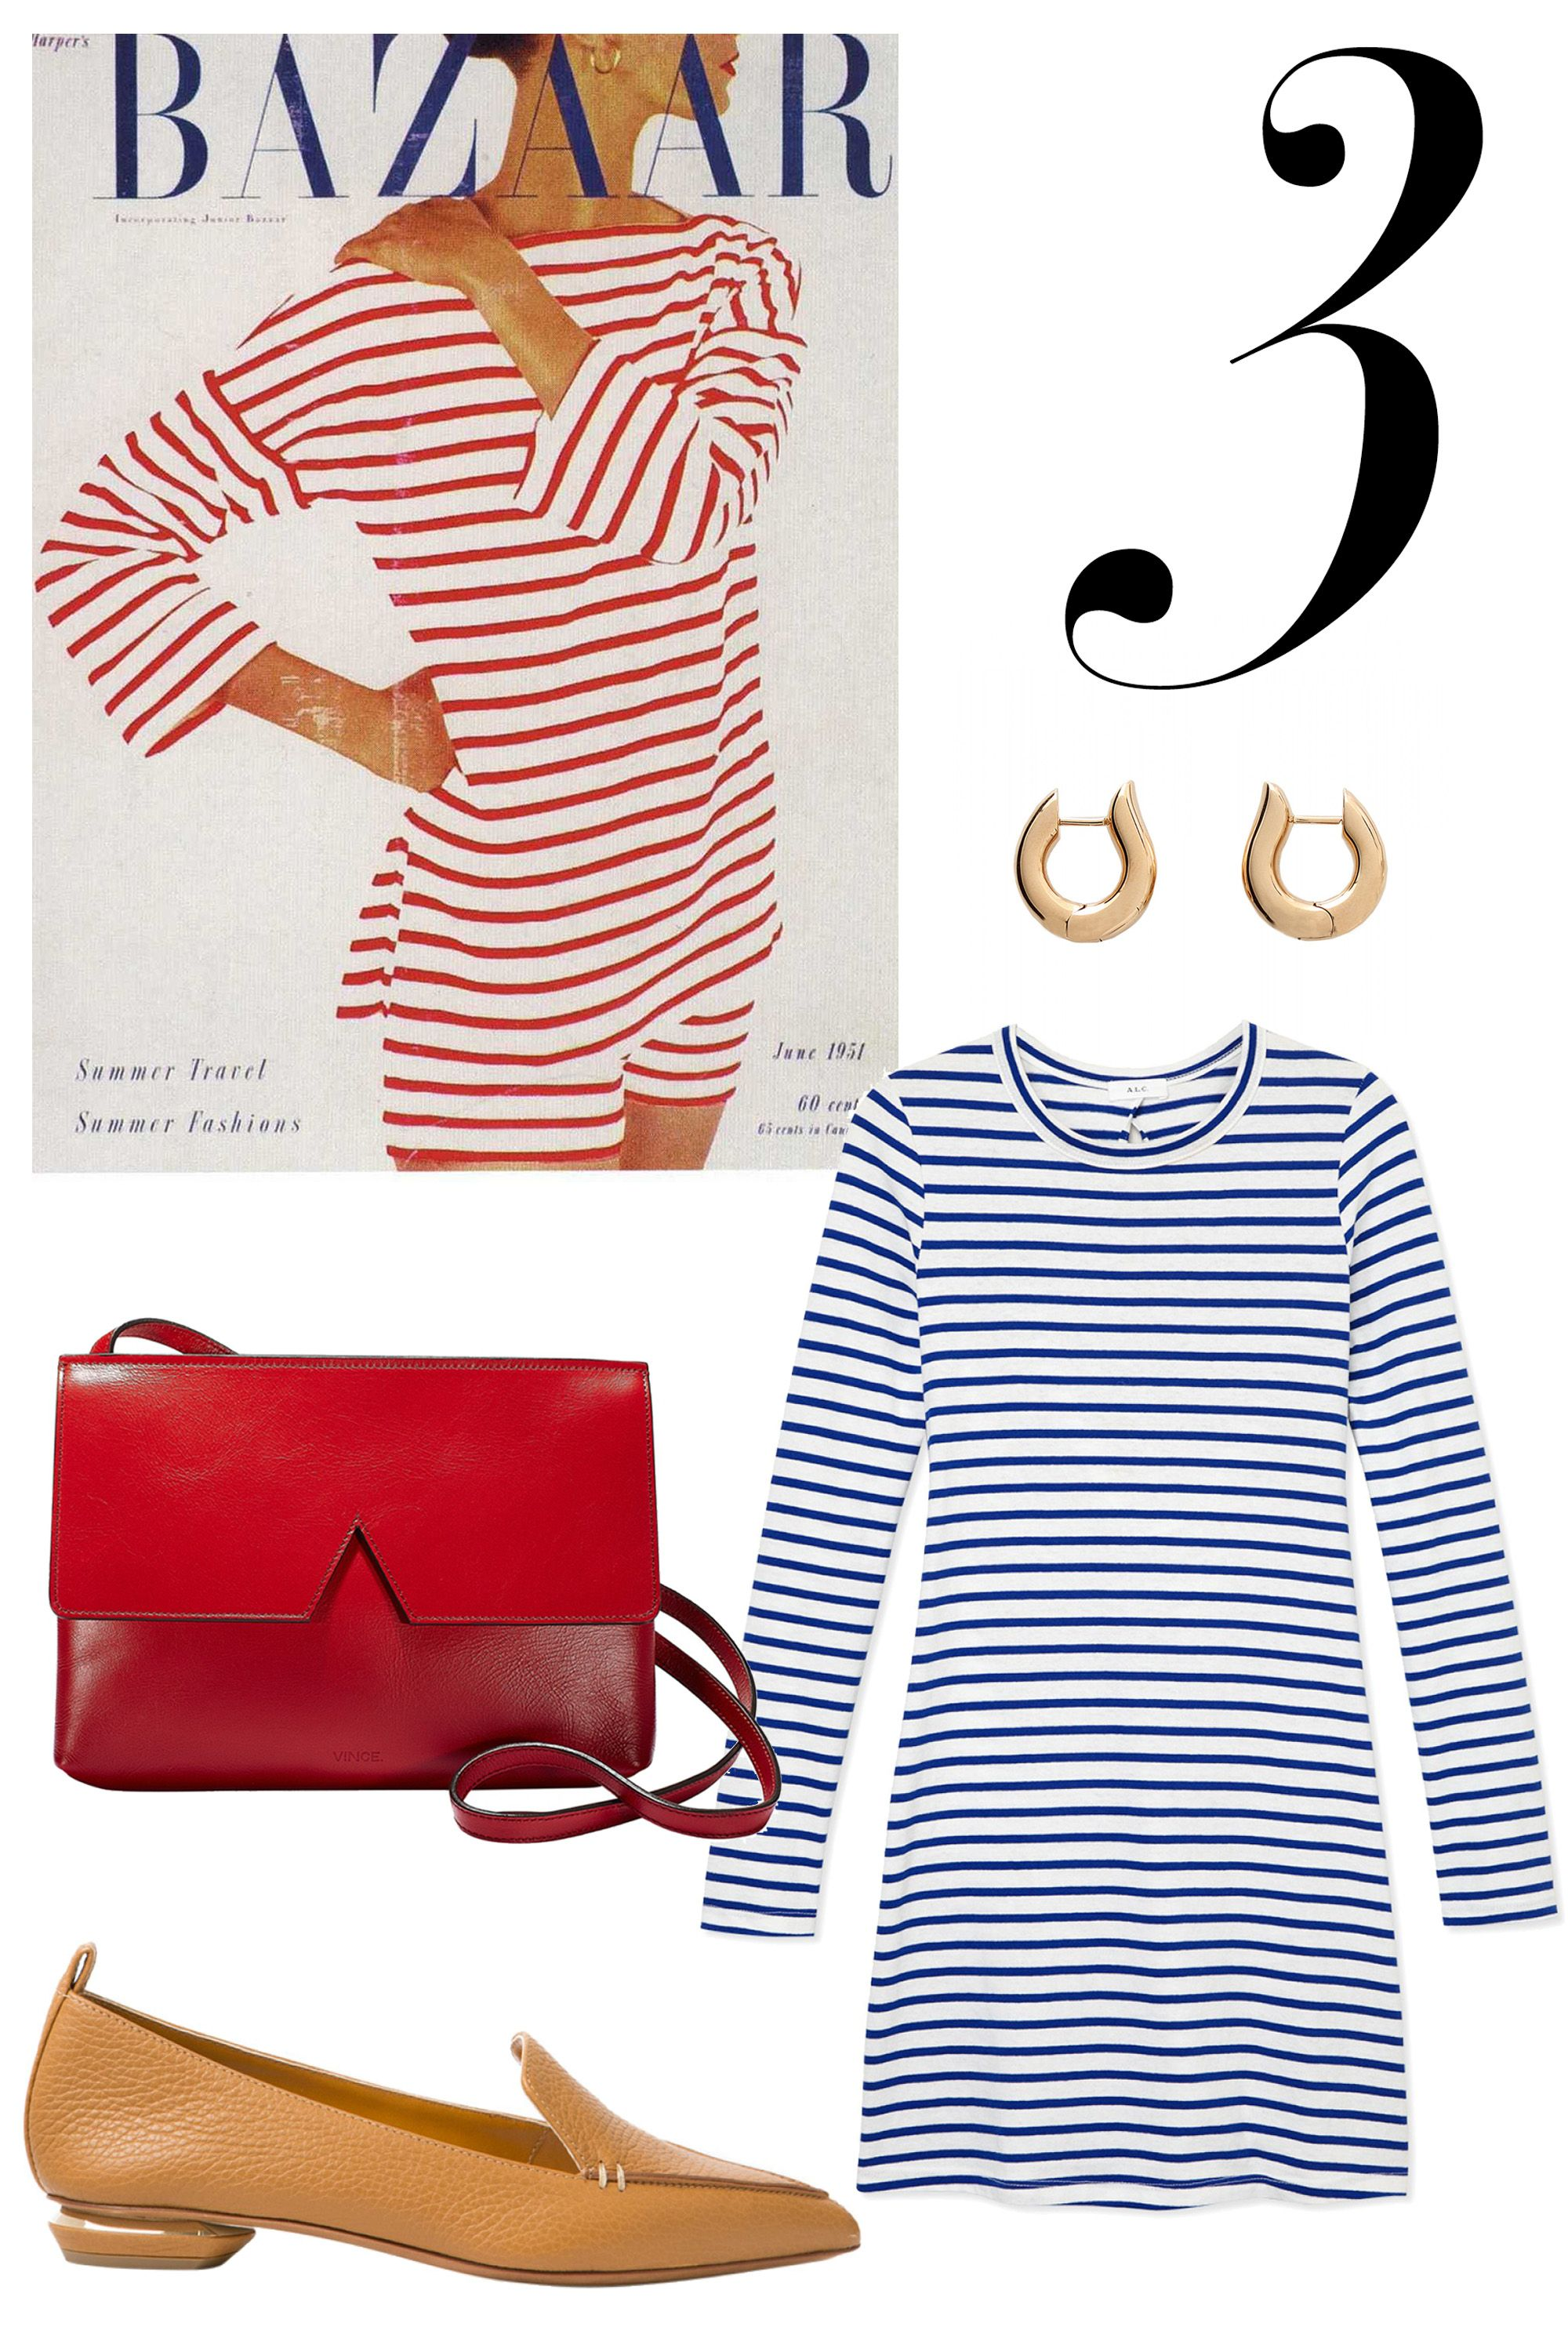 "Alexey Brodovitch radiates sophistication in her classic French ensemble. Opt for horizontal stripes in either blues or reds, paired with beige loafers and a red cross body bag. Try medium hoop earrings to round out the look.   <strong>Shop The Look: </strong><em>Vince bag, $295, <a target=""_blank"" href=""http://shop.harpersbazaar.com/designers/vince/signature-collection-baby-crossbody/"">ShopBAZAAR.com.</a>, Nicholas Kirkwood shoes, $395, <a target=""_blank"" href=""http://shop.harpersbazaar.com/designers/nicholas-kirkwood/bottalato-loafer/"">ShopBAZAAR.com.</a>, A.L.C. dress, $245, <a target=""_blank"" href=""http://shop.harpersbazaar.com/designers/a-l-c/fay-dress/"">ShopBAZAAR.com.</a>, Tamara Comolli earrings, $3,420, <a target=""_blank"" href=""http://shop.harpersbazaar.com/designers/tamara-comolli/medium-drop-hoop-earrings/"">ShopBAZAAR.com.</a></em>"